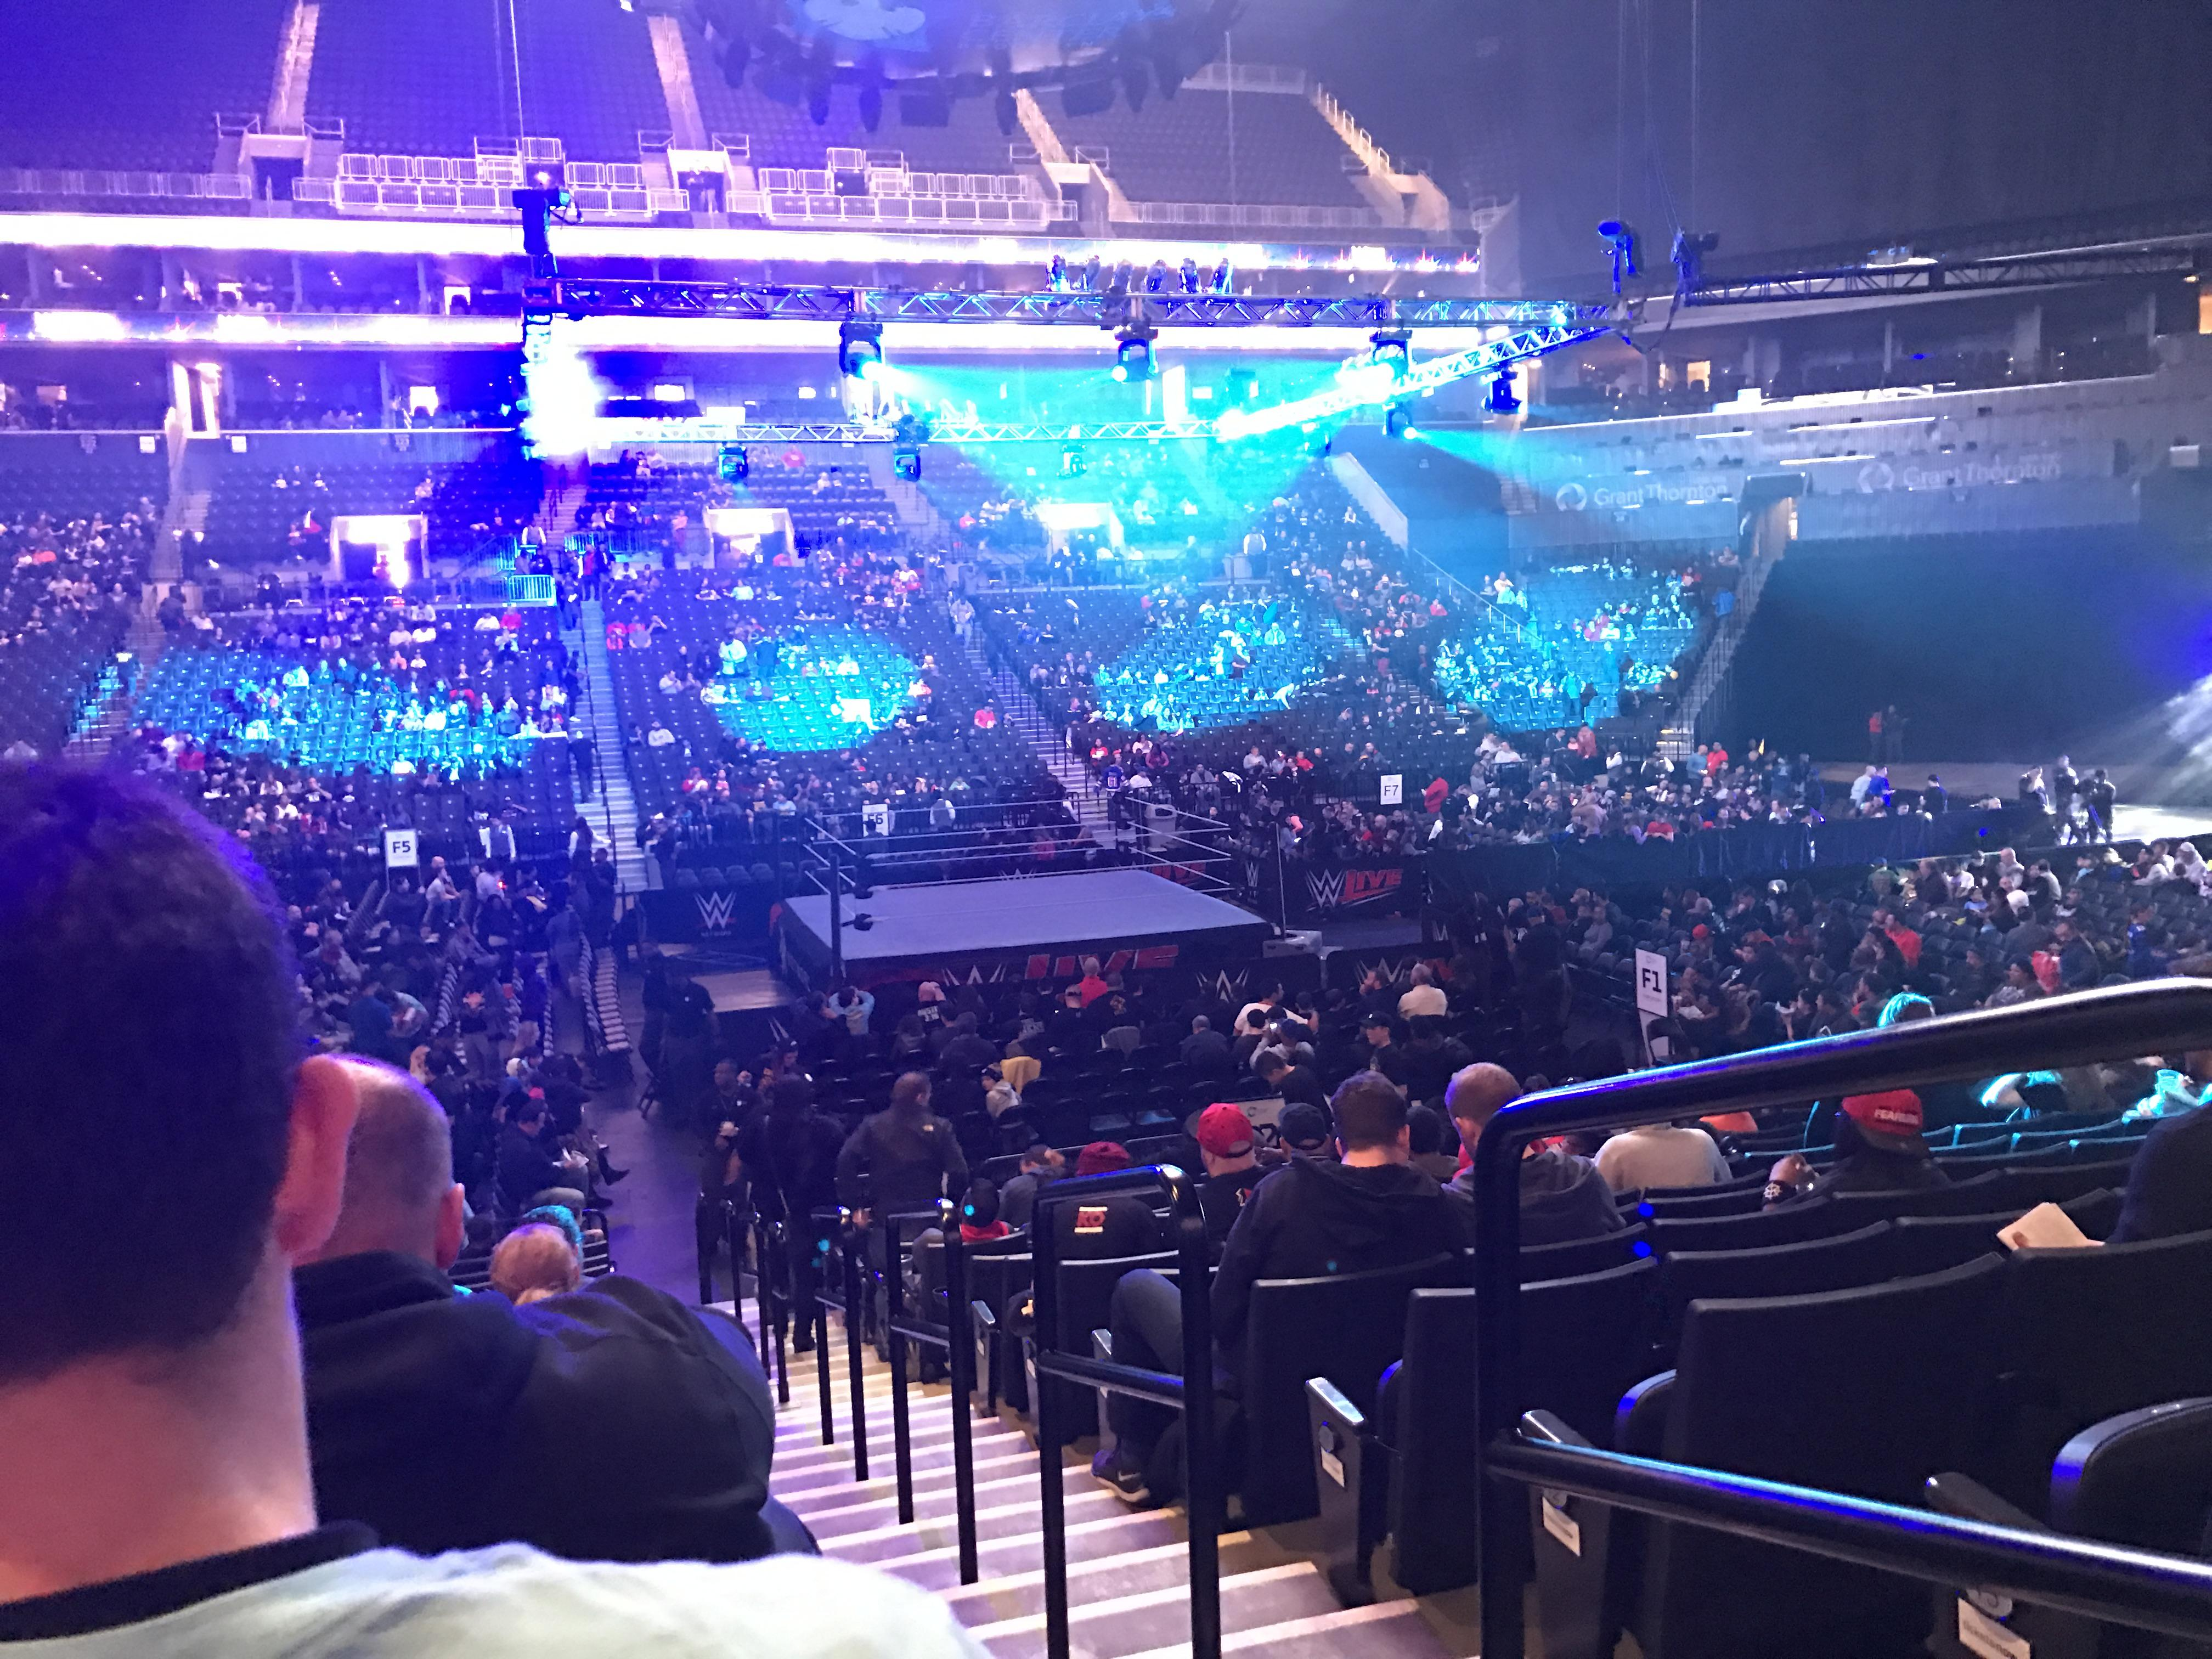 Barclays Center Section 9 Row 15 Seat 1